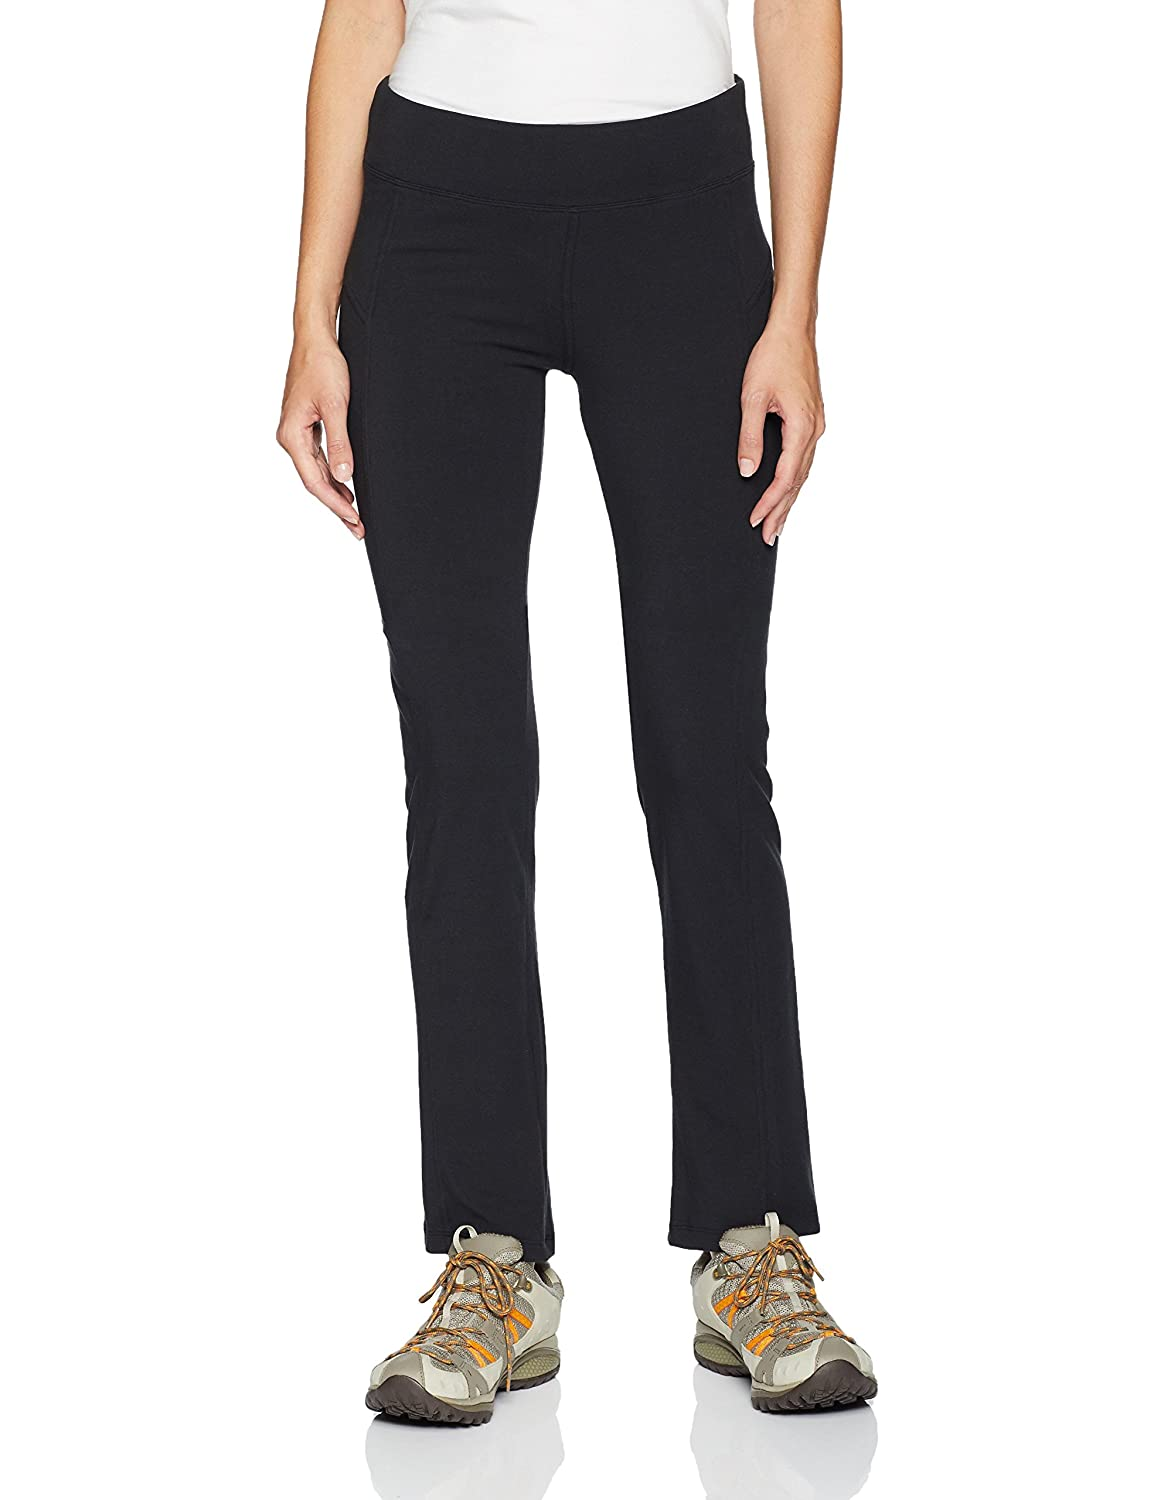 9a4c9c73e05 Columbia Women s Anytime Casual Straight Leg Pant at Amazon Women s  Clothing store